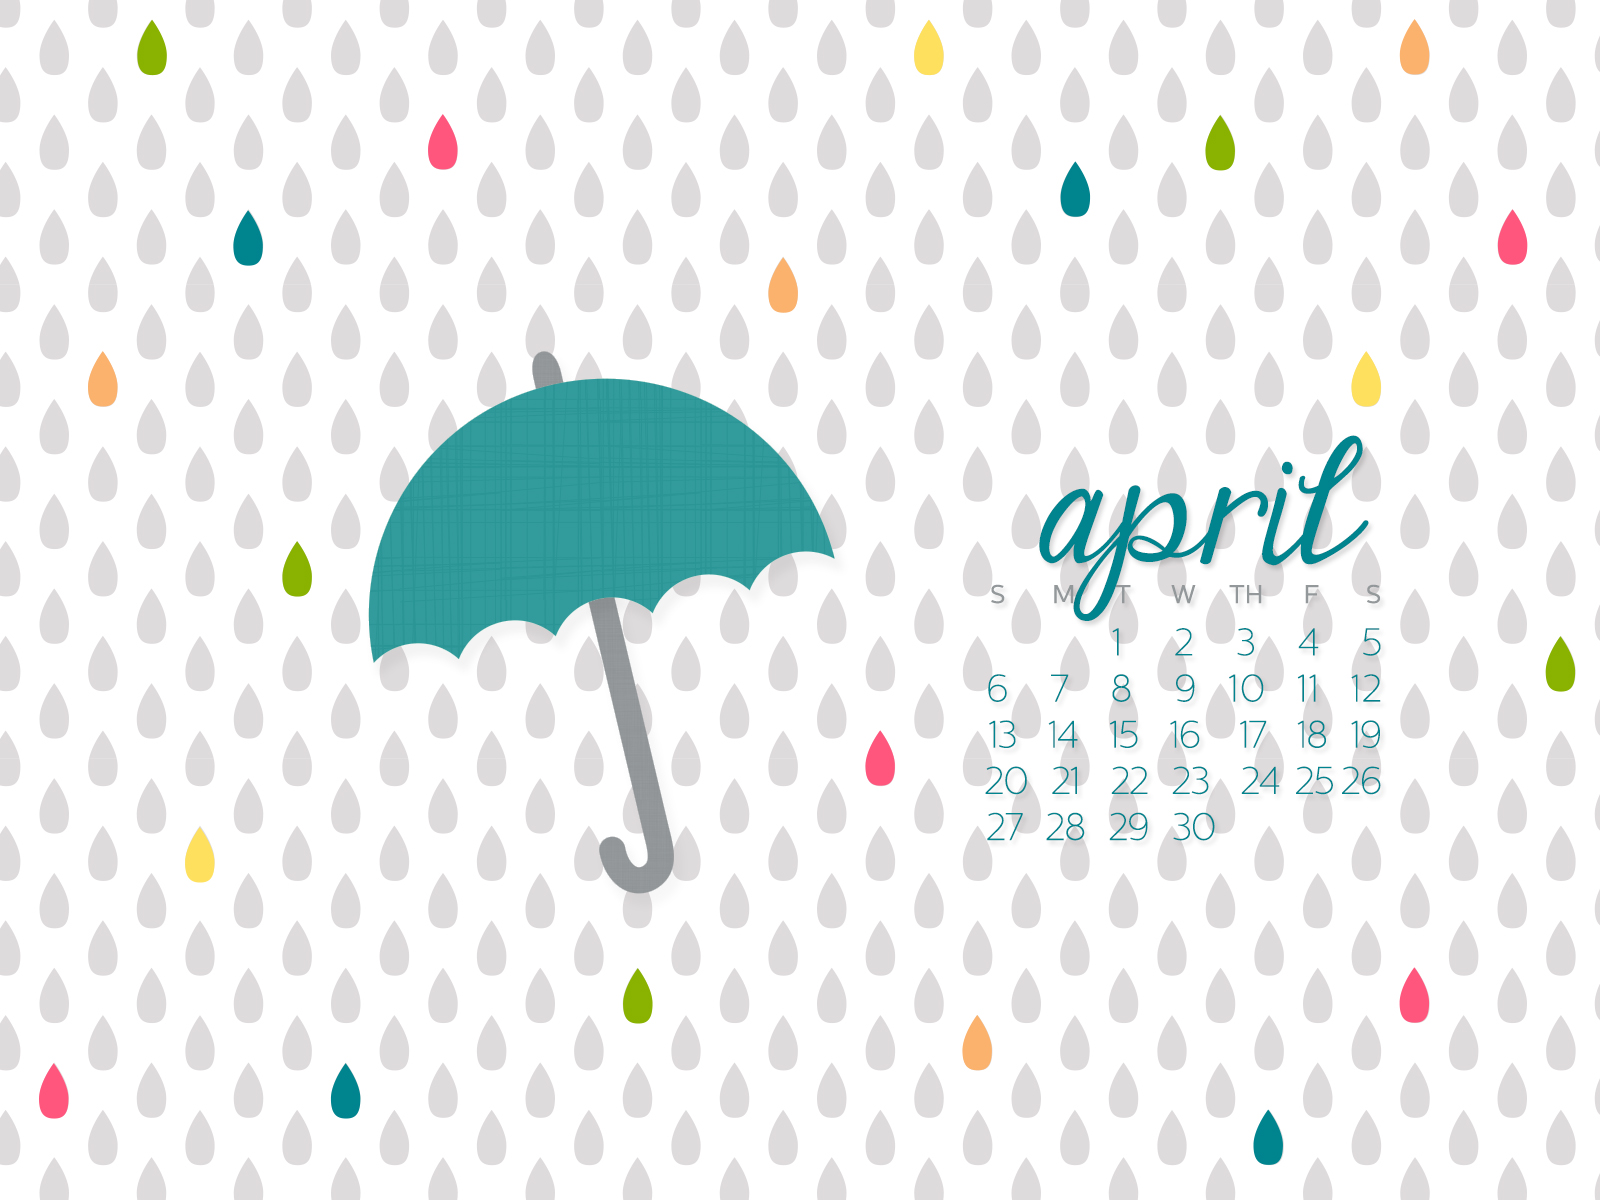 desktop calendar background april 2014